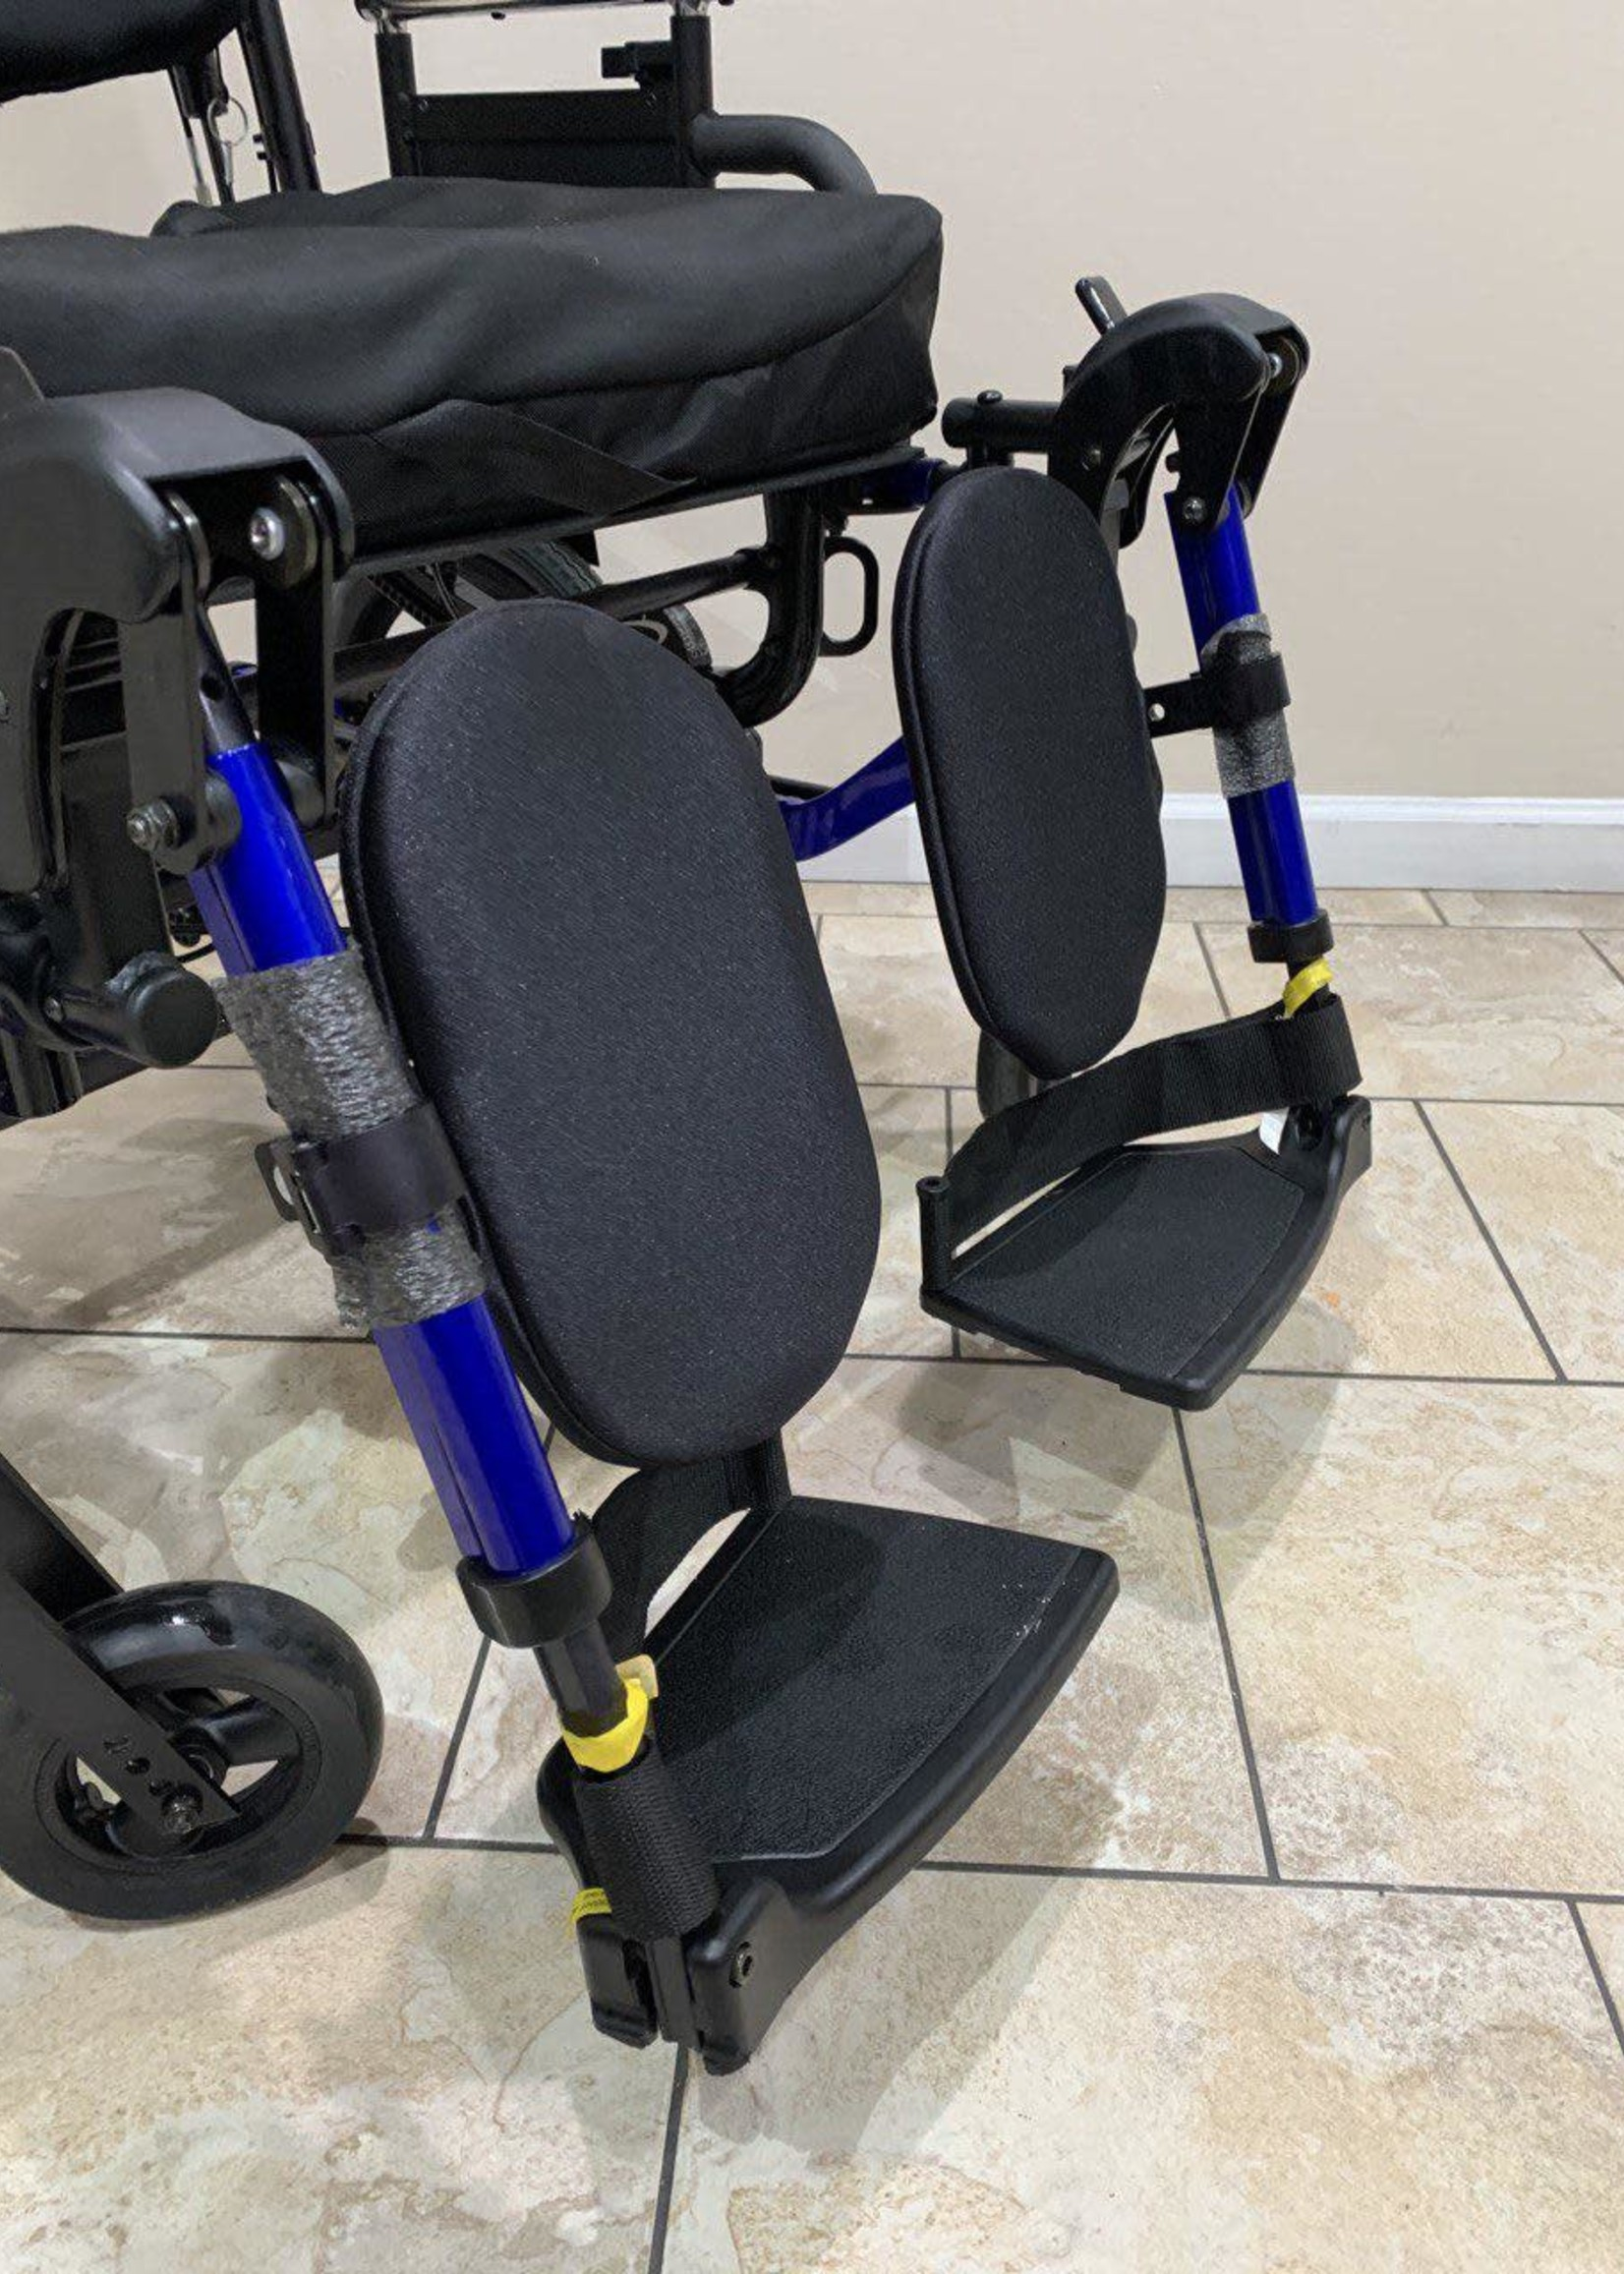 Sunrise Medical Quickie IRIS Tilt-in-Space Heavy Duty Manual Wheelchair (Used)